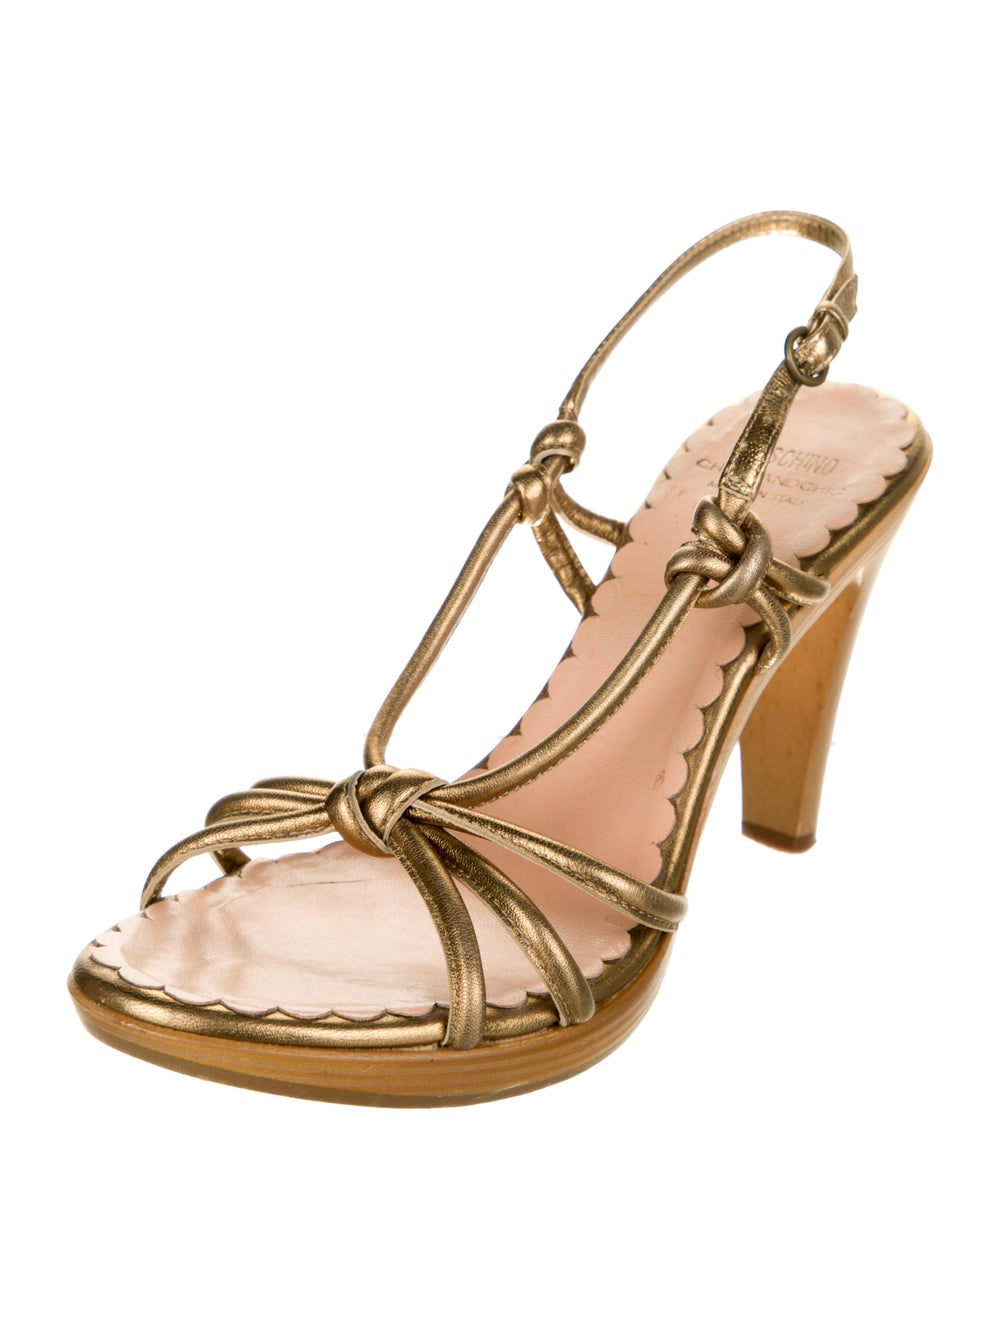 Moschino Cheap and Chic Leather Slingback Sandals - image 2